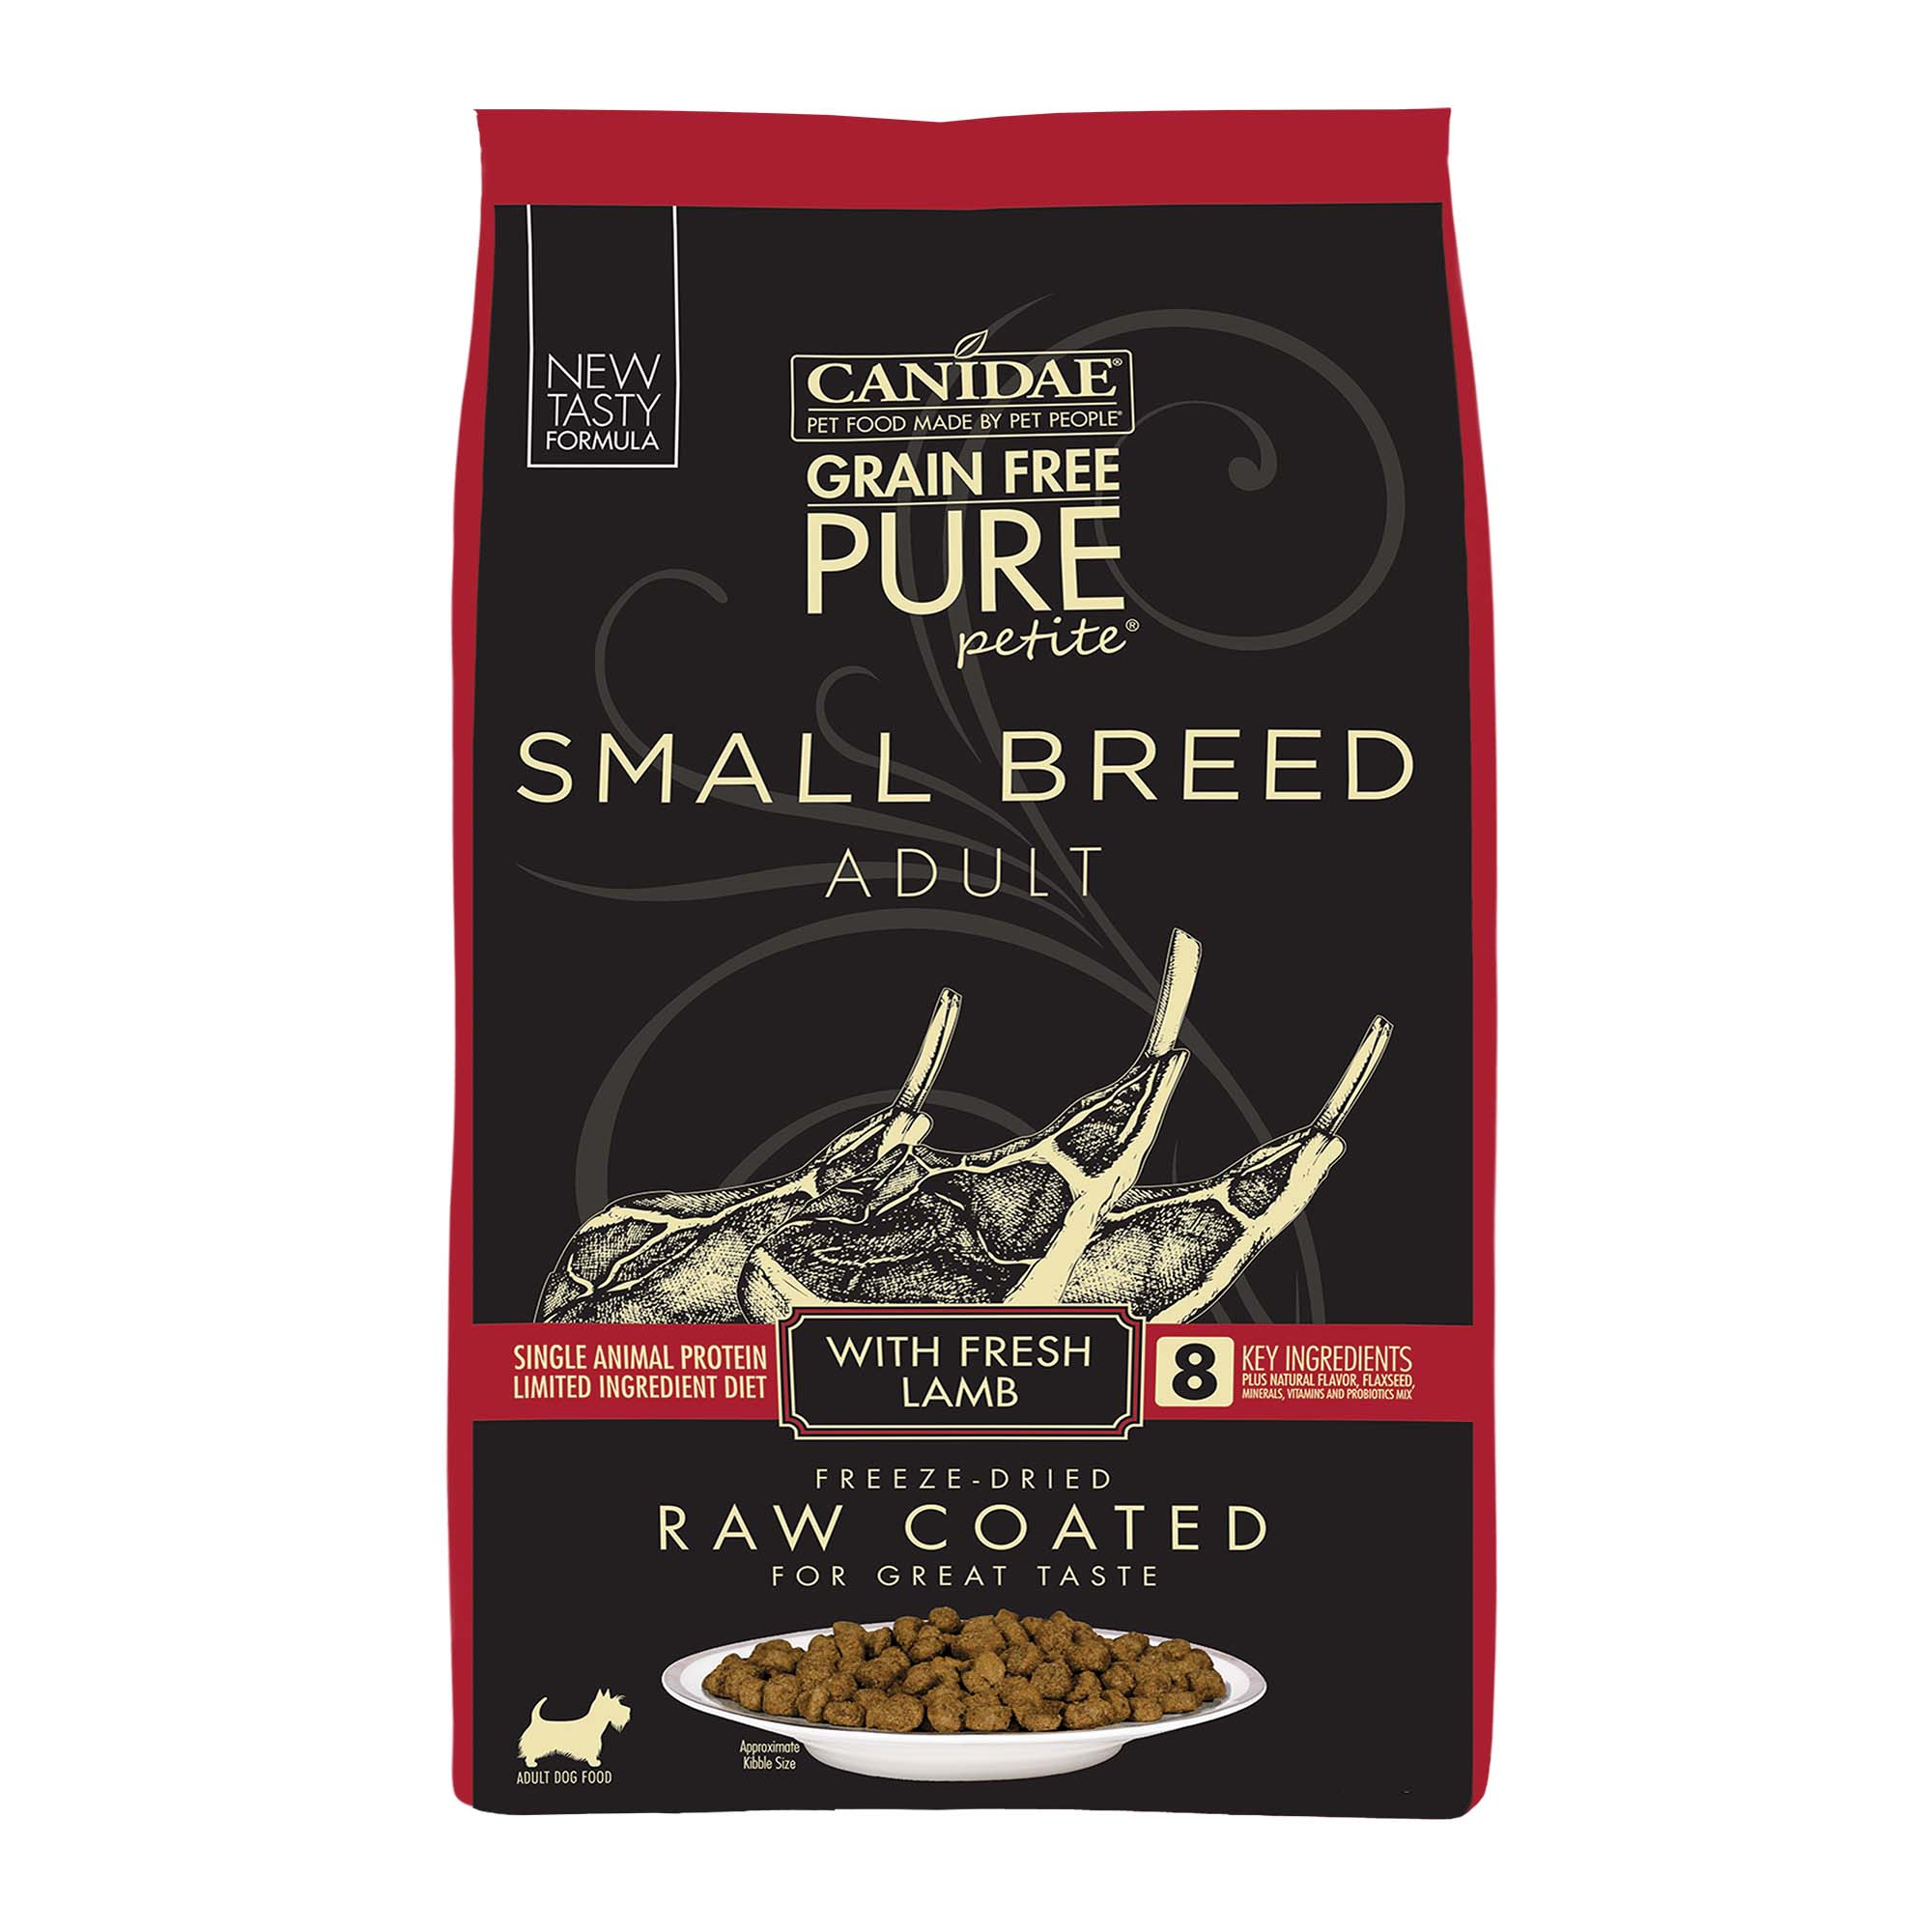 Canidae PURE Grain Free Petite Small Breed Limited Ingredient Diet with Fresh Lamb Freeze Dried Raw Coated Dry Dog Food, 10 lbs.